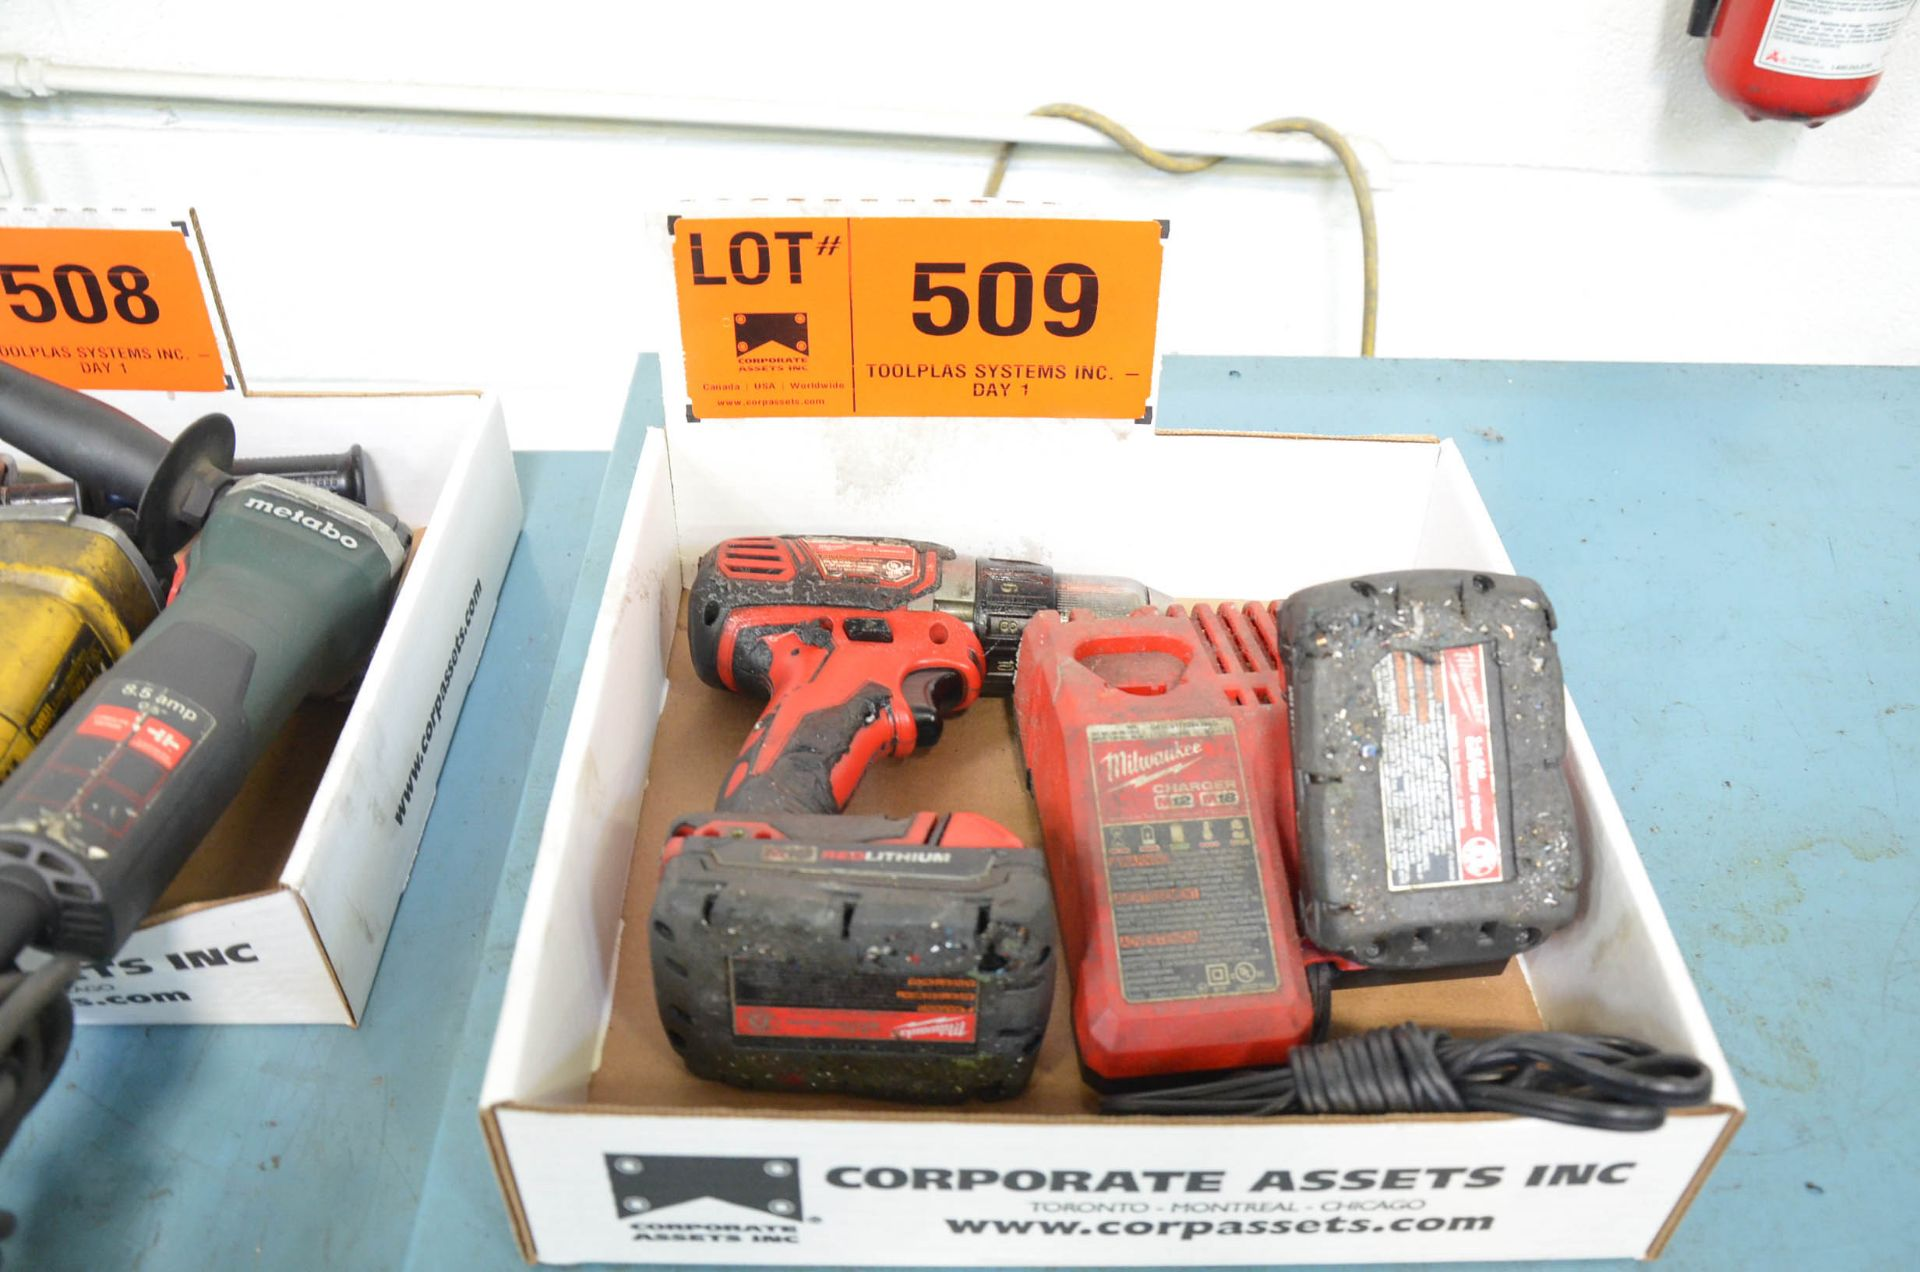 LOT/ MILWAUKEE CORDLESS DRILL WITH CHARGER